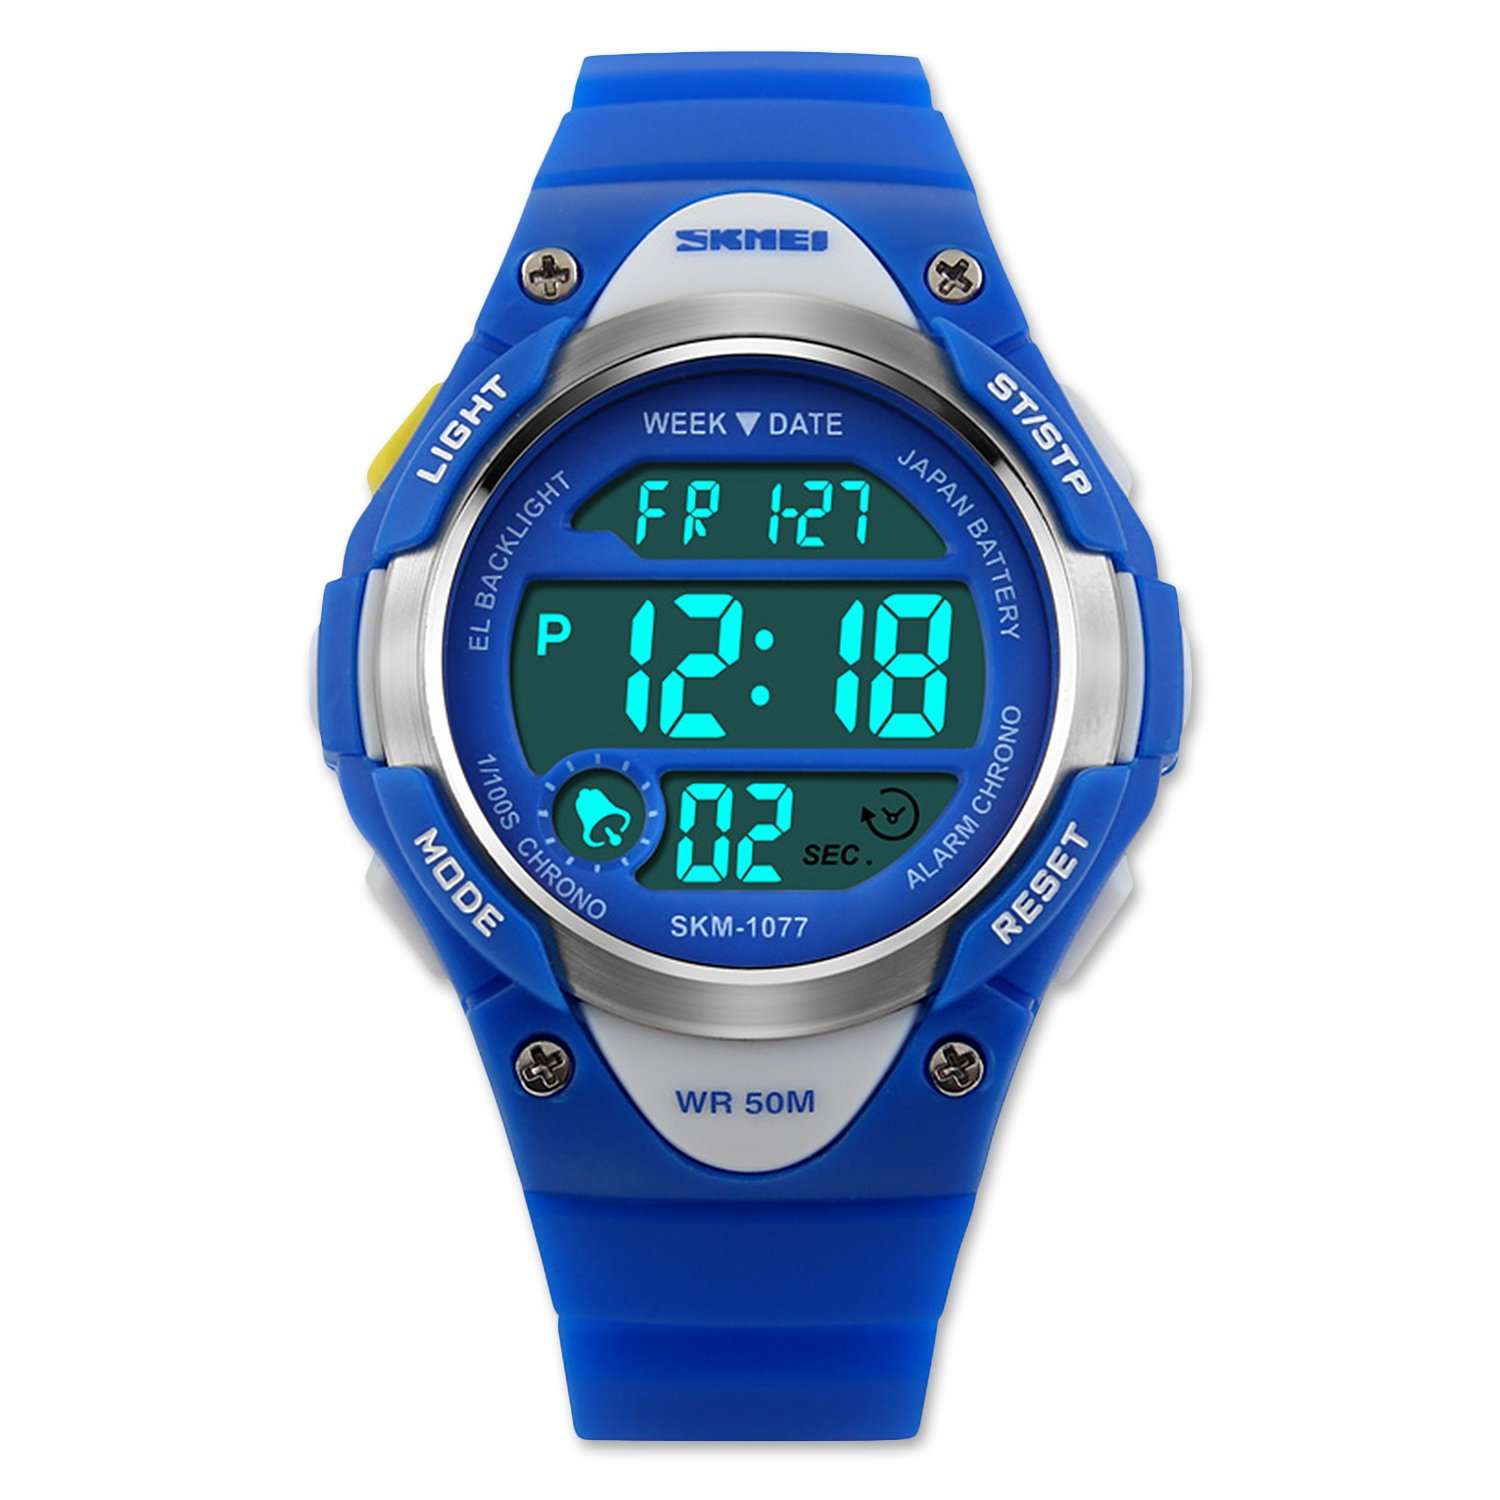 Boys Digital Sport Watch, Kids Outdoor Waterproof Electronic Analogue Watches LED Alarm Stopwatch Back Light Timer for Youth Childrens – Blue